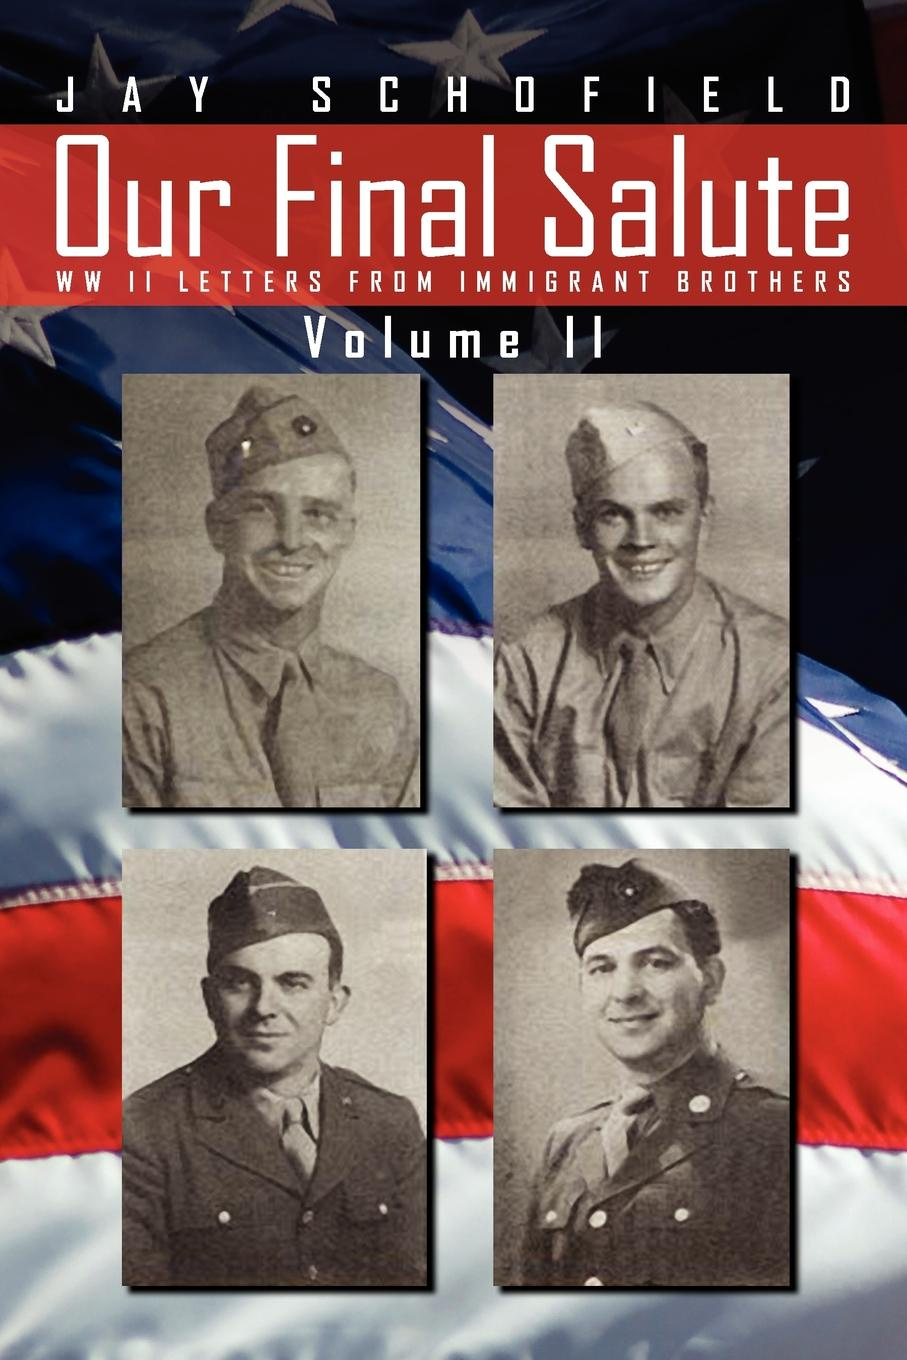 Jay Schofield Our Final Salute. WW II Letters from Immigrant Brothers Volume II abdenal carvalho conceitos biblicos volume ii